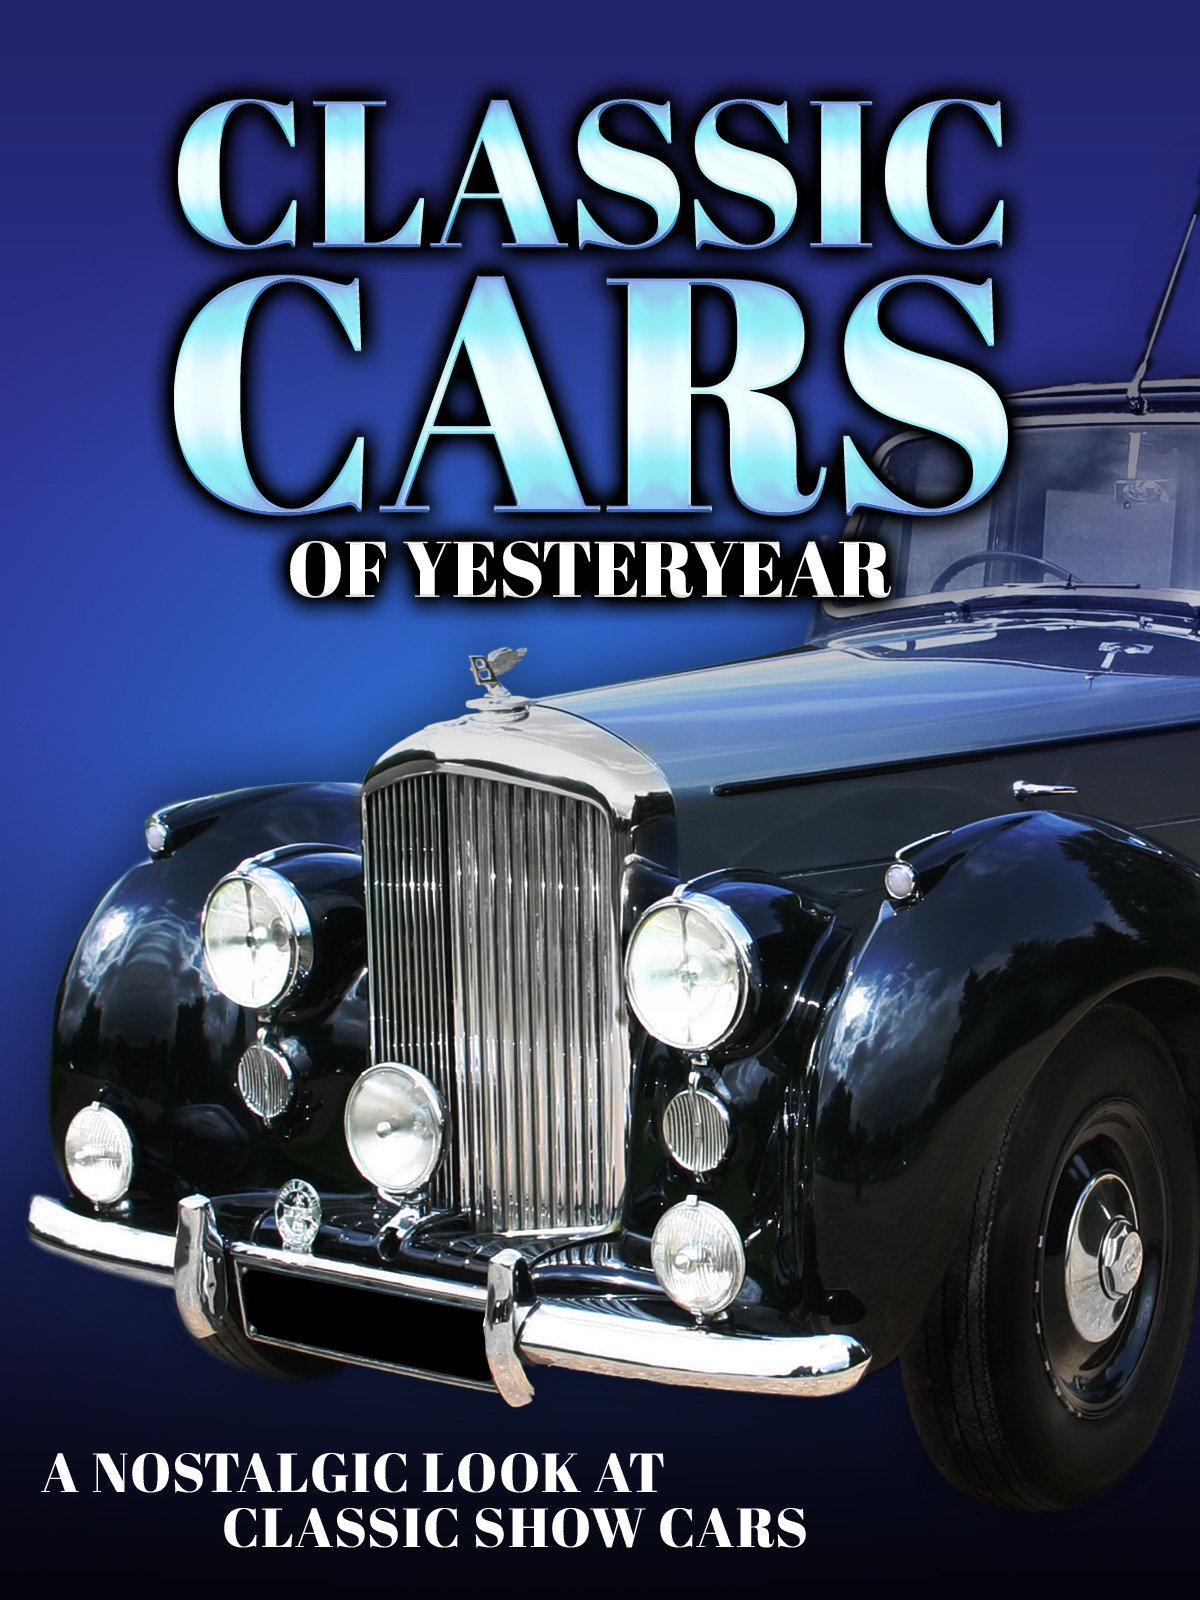 Classic Cars of Yesteryear: A Nostalgic Look at Classic Show Cars